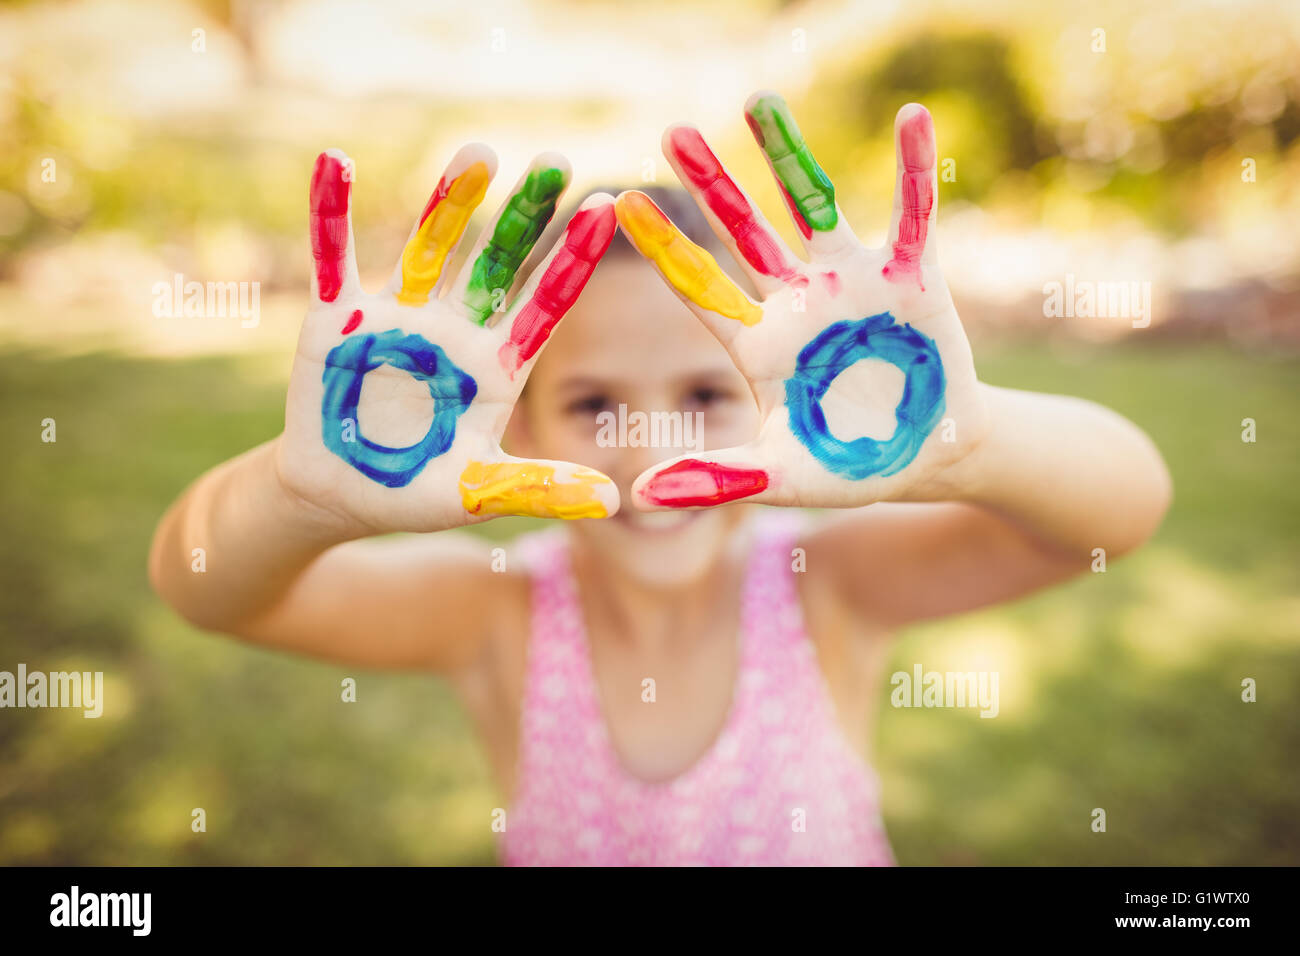 Little girl making a triangle with her painted hands to the camera - Stock Image